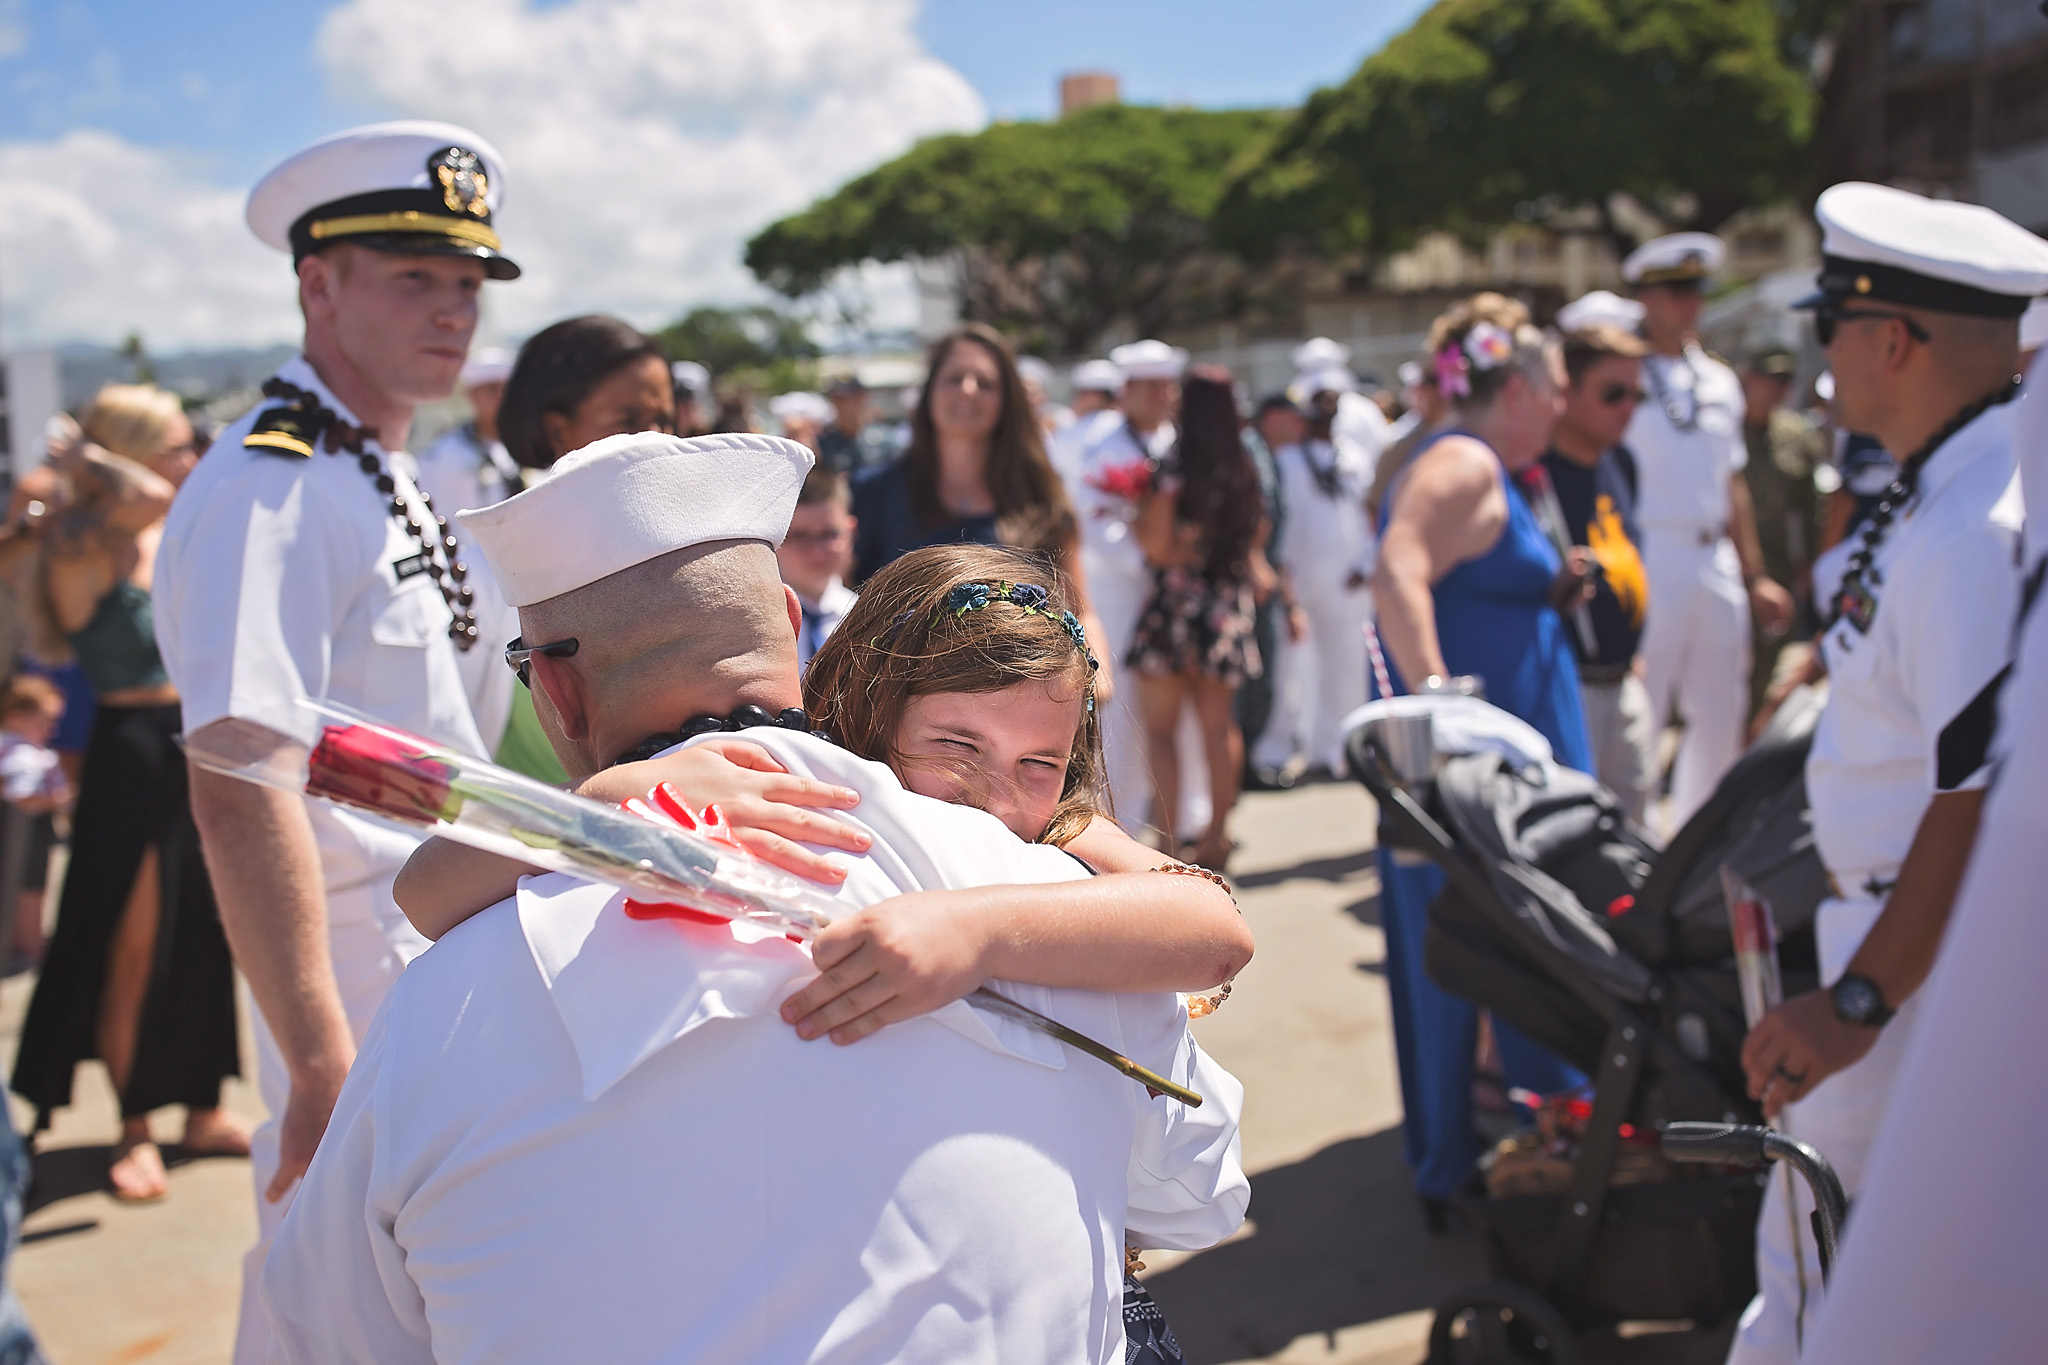 Yougn girl empracing her U.s. Navy salior father with a huge smile on her face at his homecoming